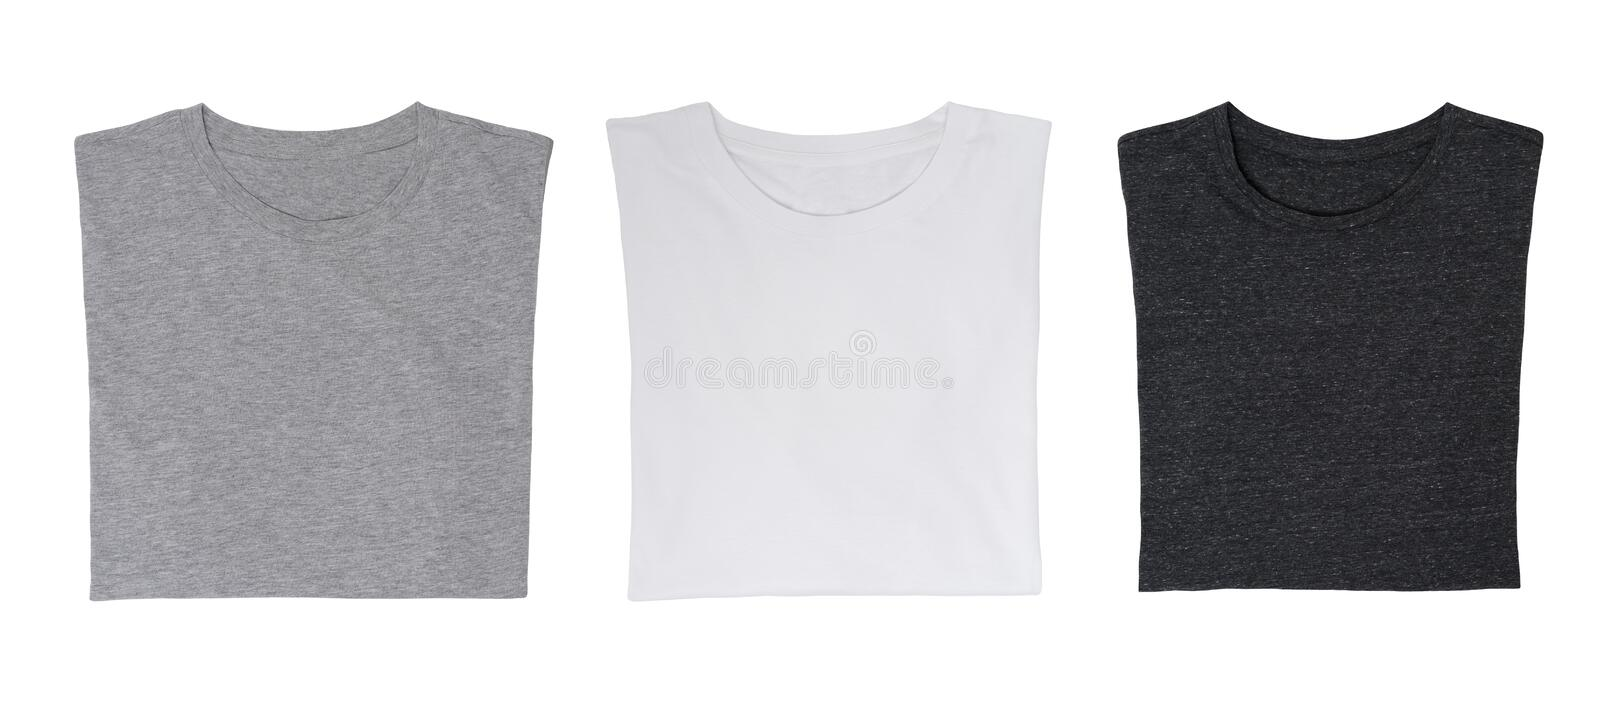 Close-up of the three t-shirts (black, white and grey). royalty free stock photo